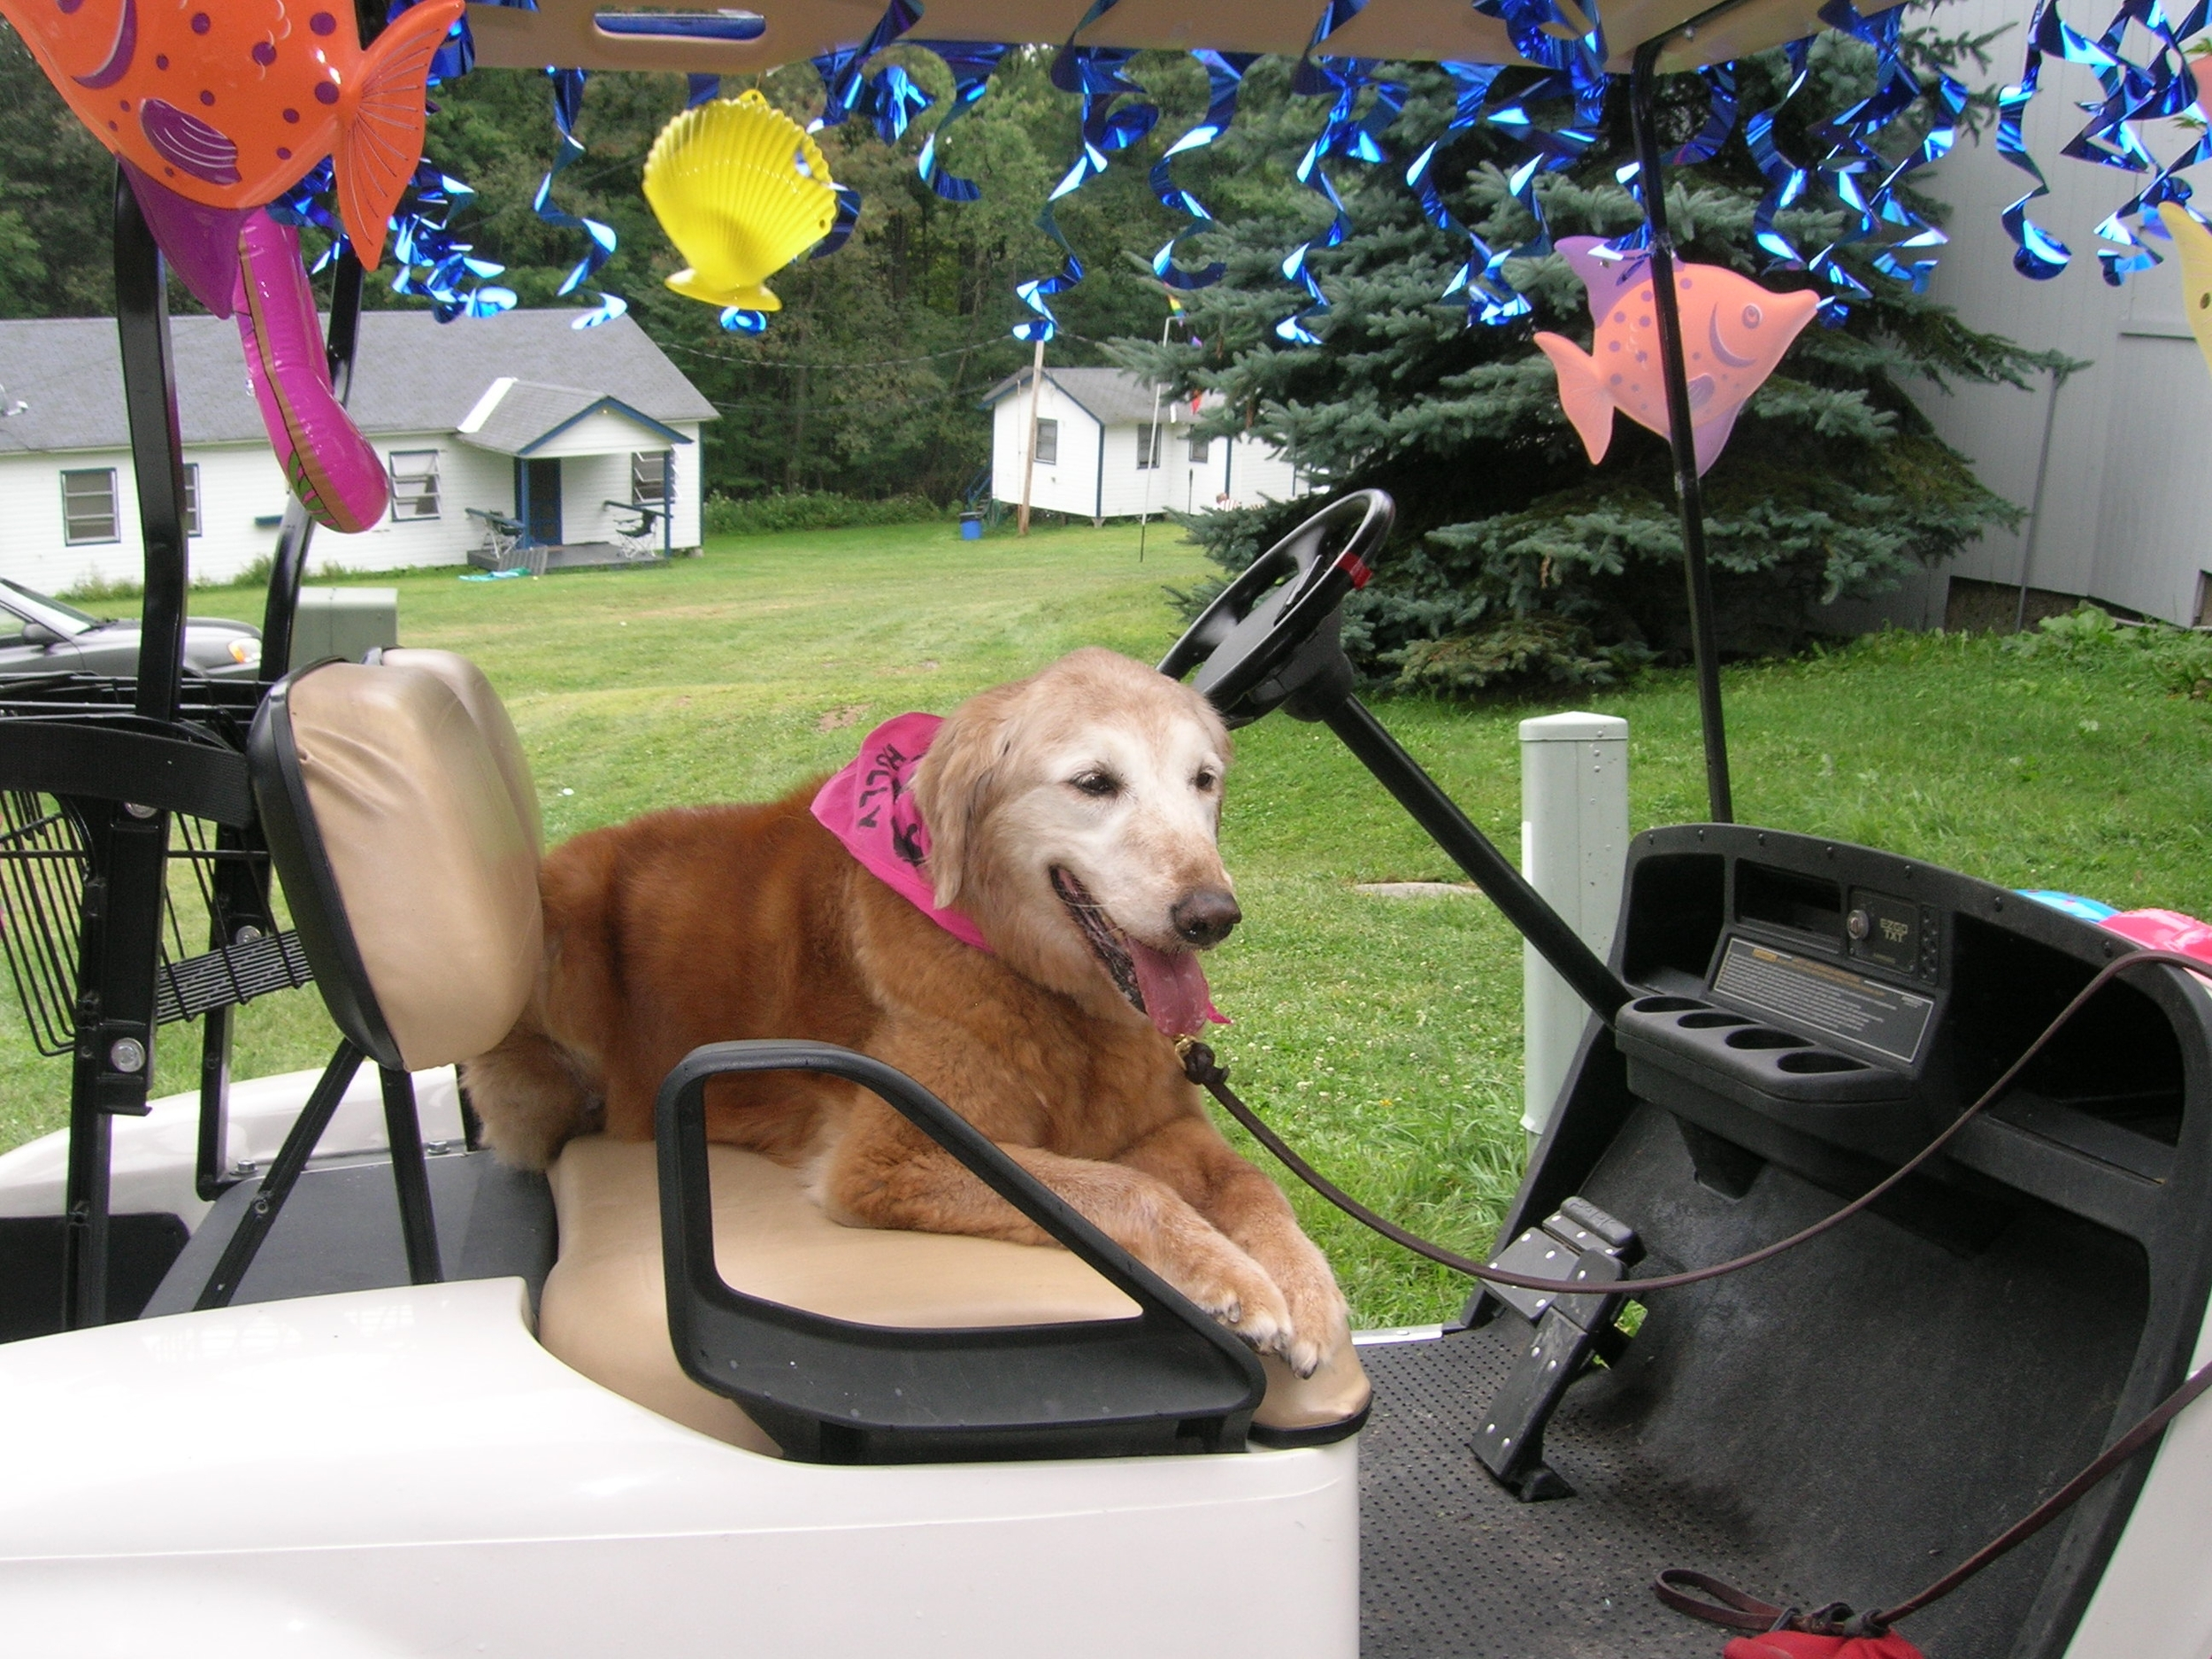 In memory of Holly, Golden Retriever (9 Sep 1993 – 27 Aug 2009)